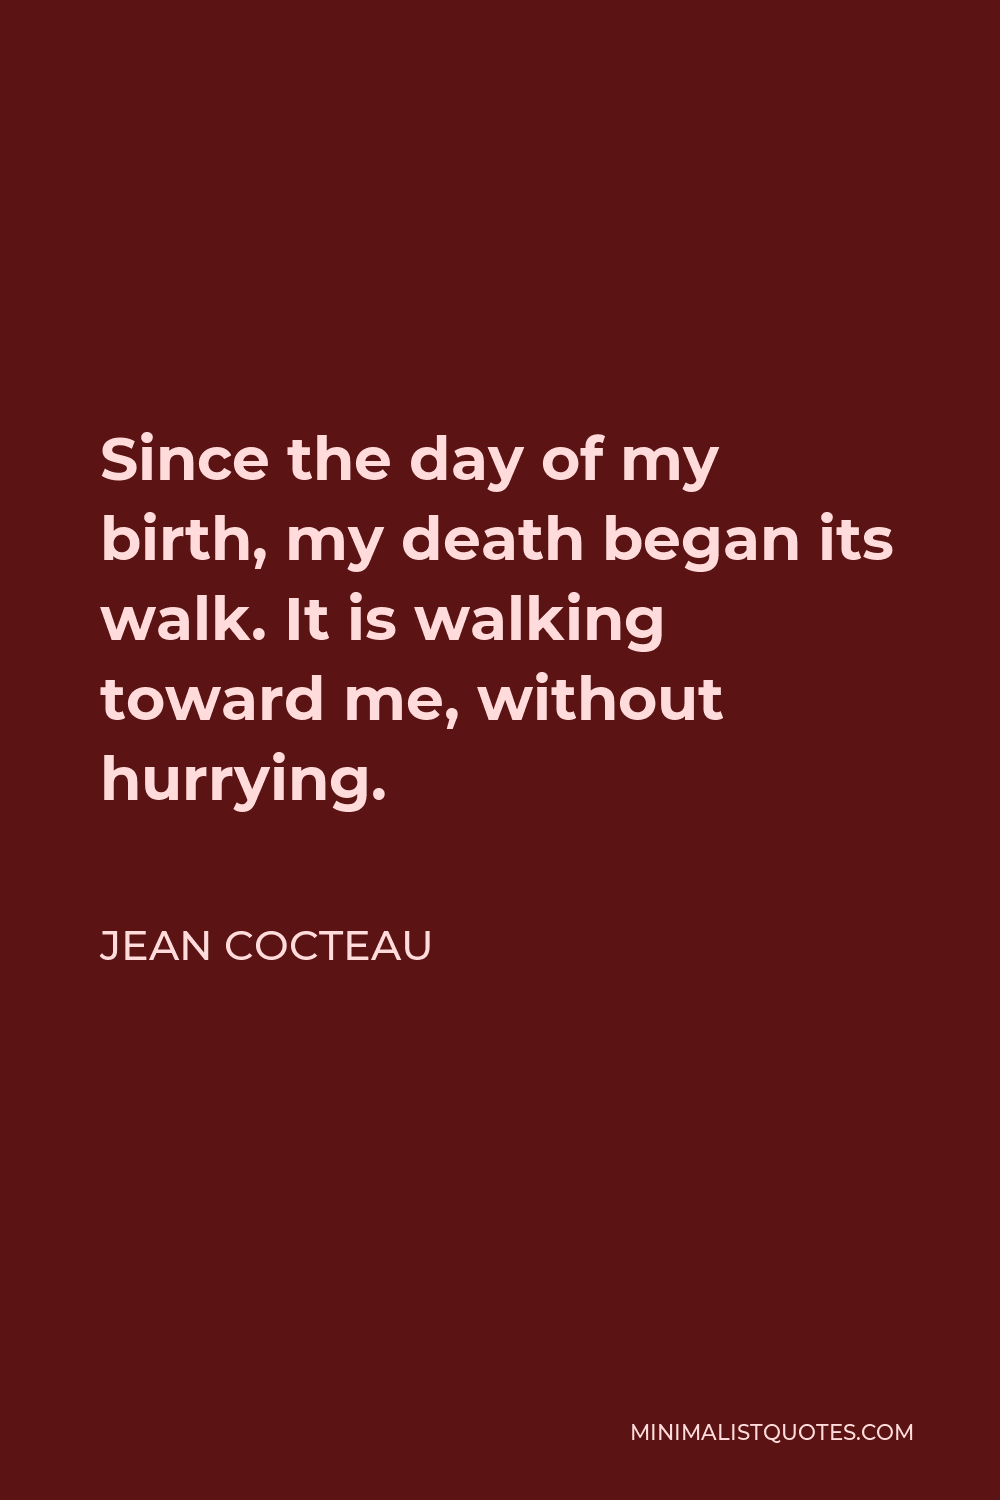 Jean Cocteau Quote - Since the day of my birth, my death began its walk. It is walking toward me, without hurrying.